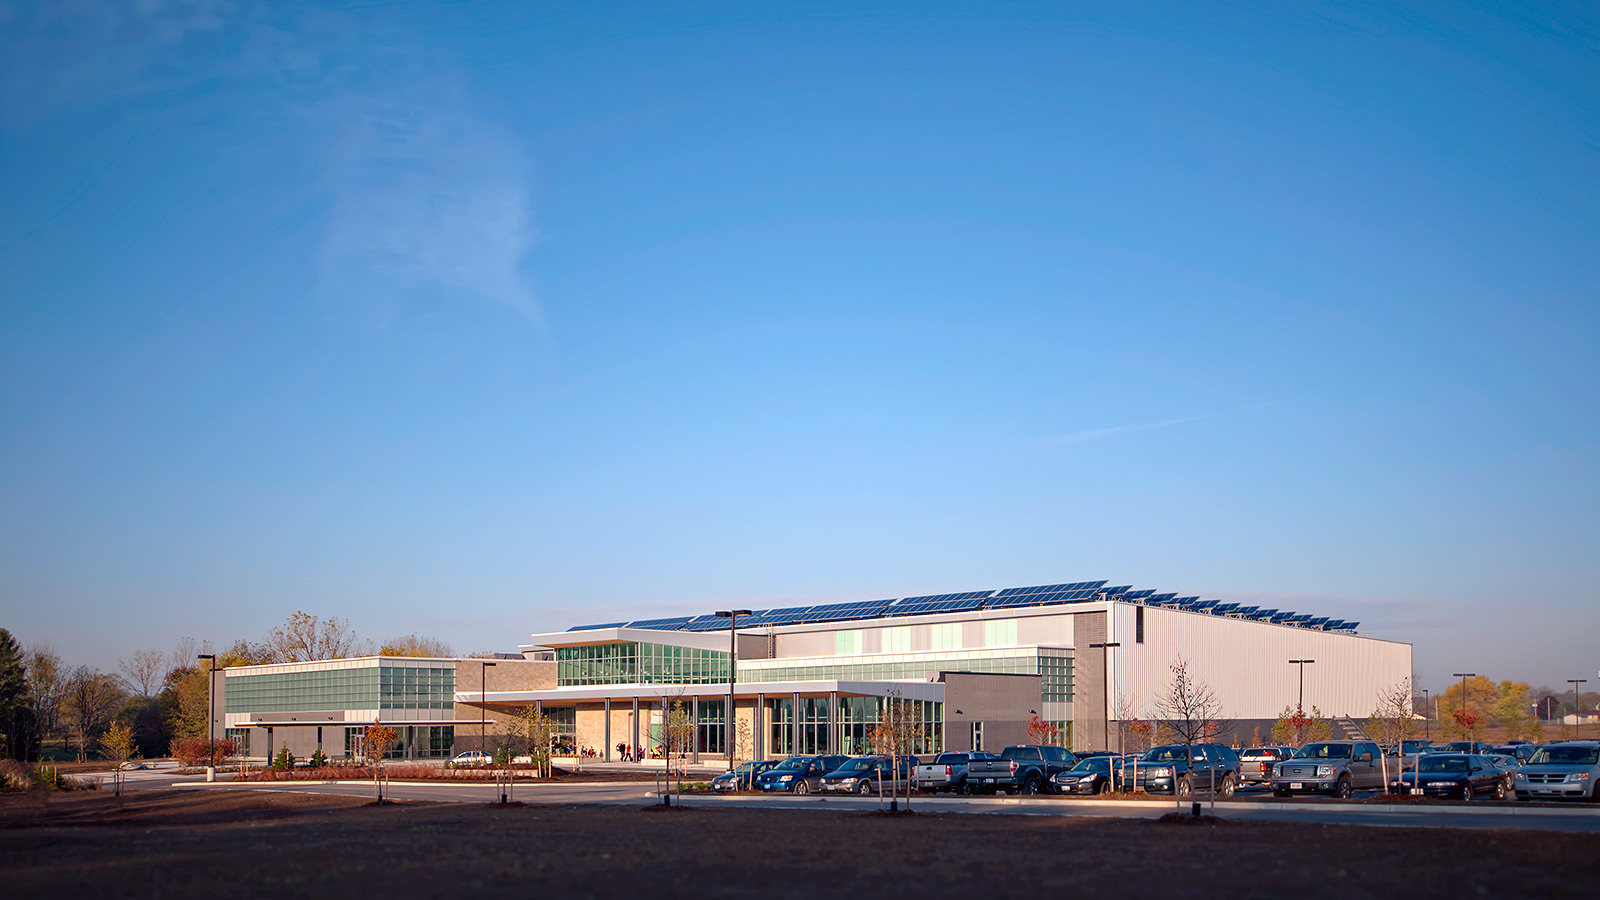 Exterior Architectural Photography of Komoka Recreation and Wellness Centre